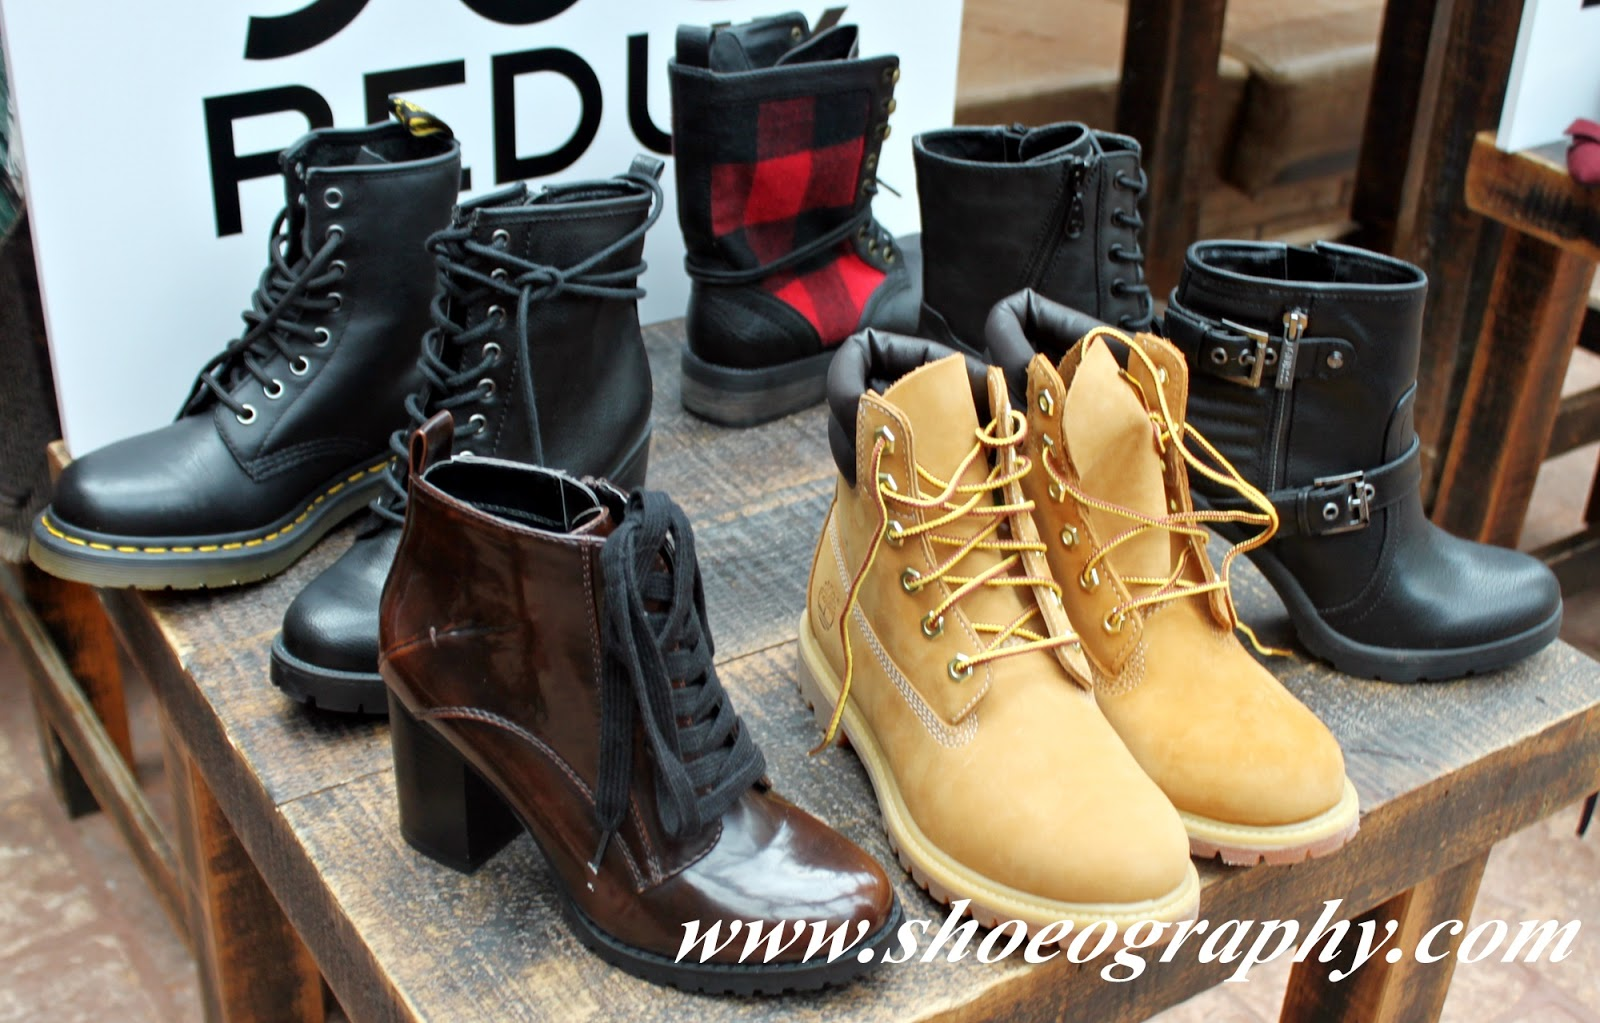 4a9f7a5e1c866 The 90's gifted us with grunge (plaid was everything), clunky boots (hello  Doc Marten), ...